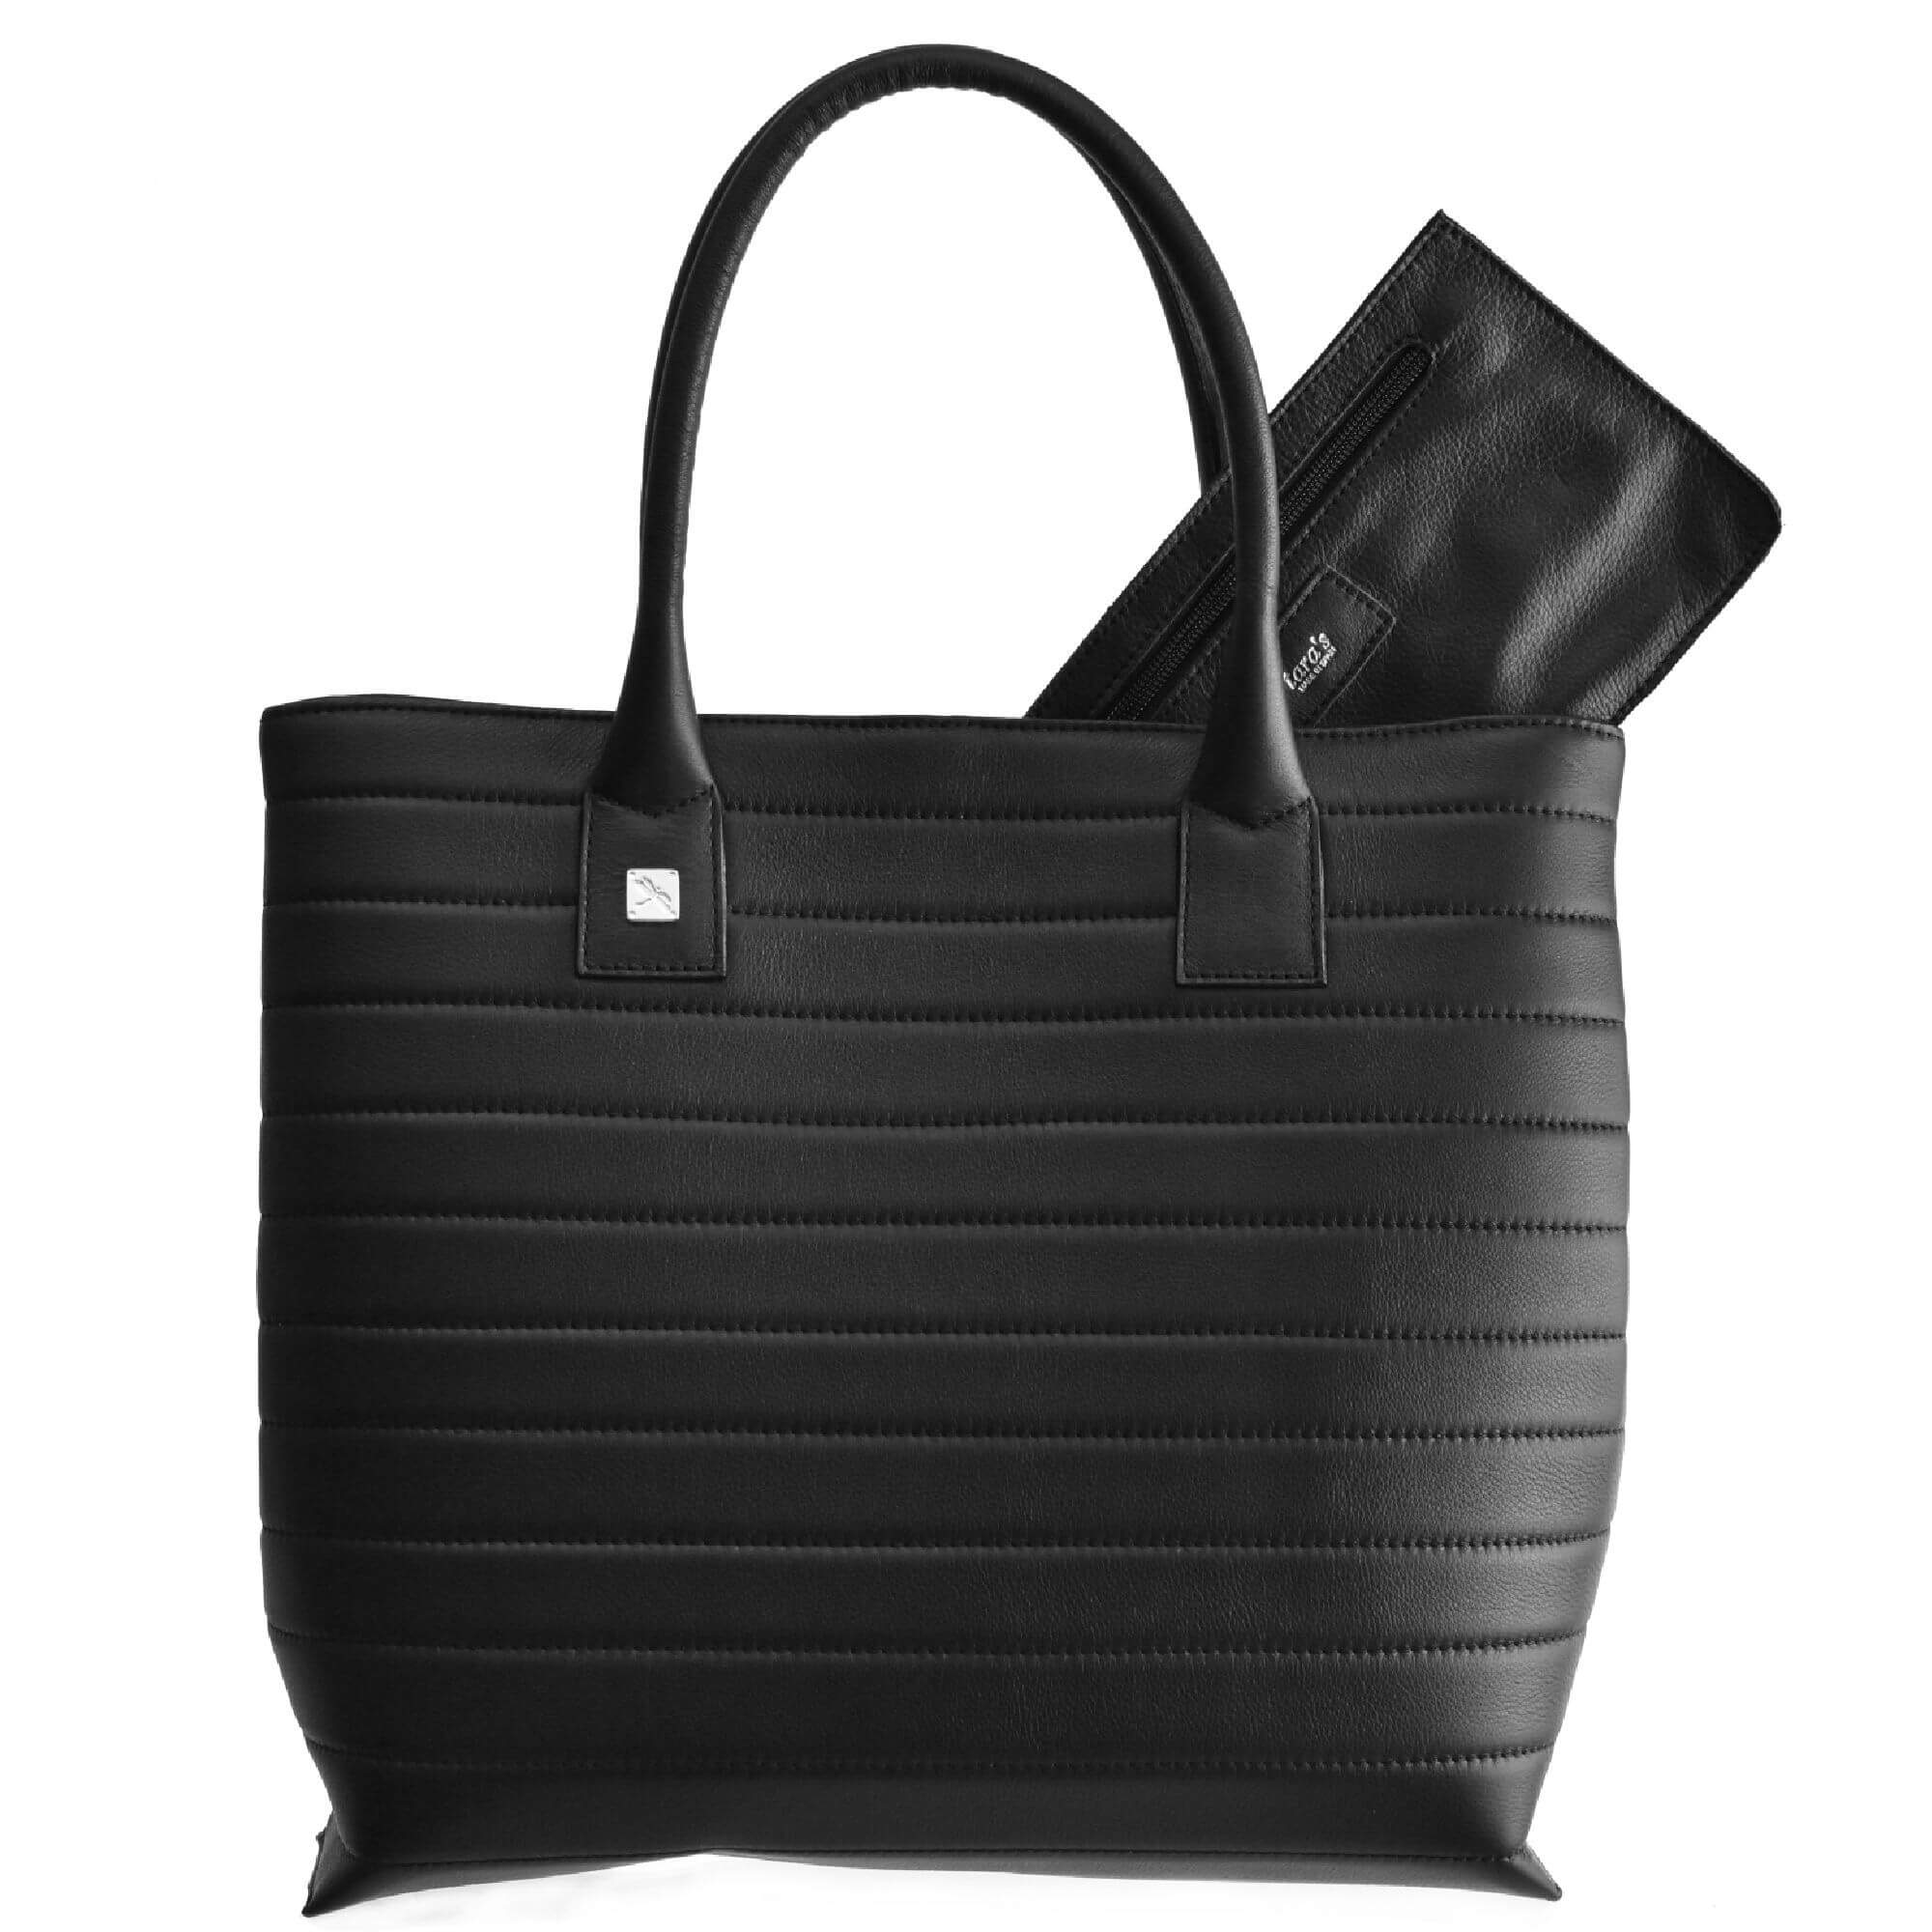 Black Tote Leather Handbag. Natalia M